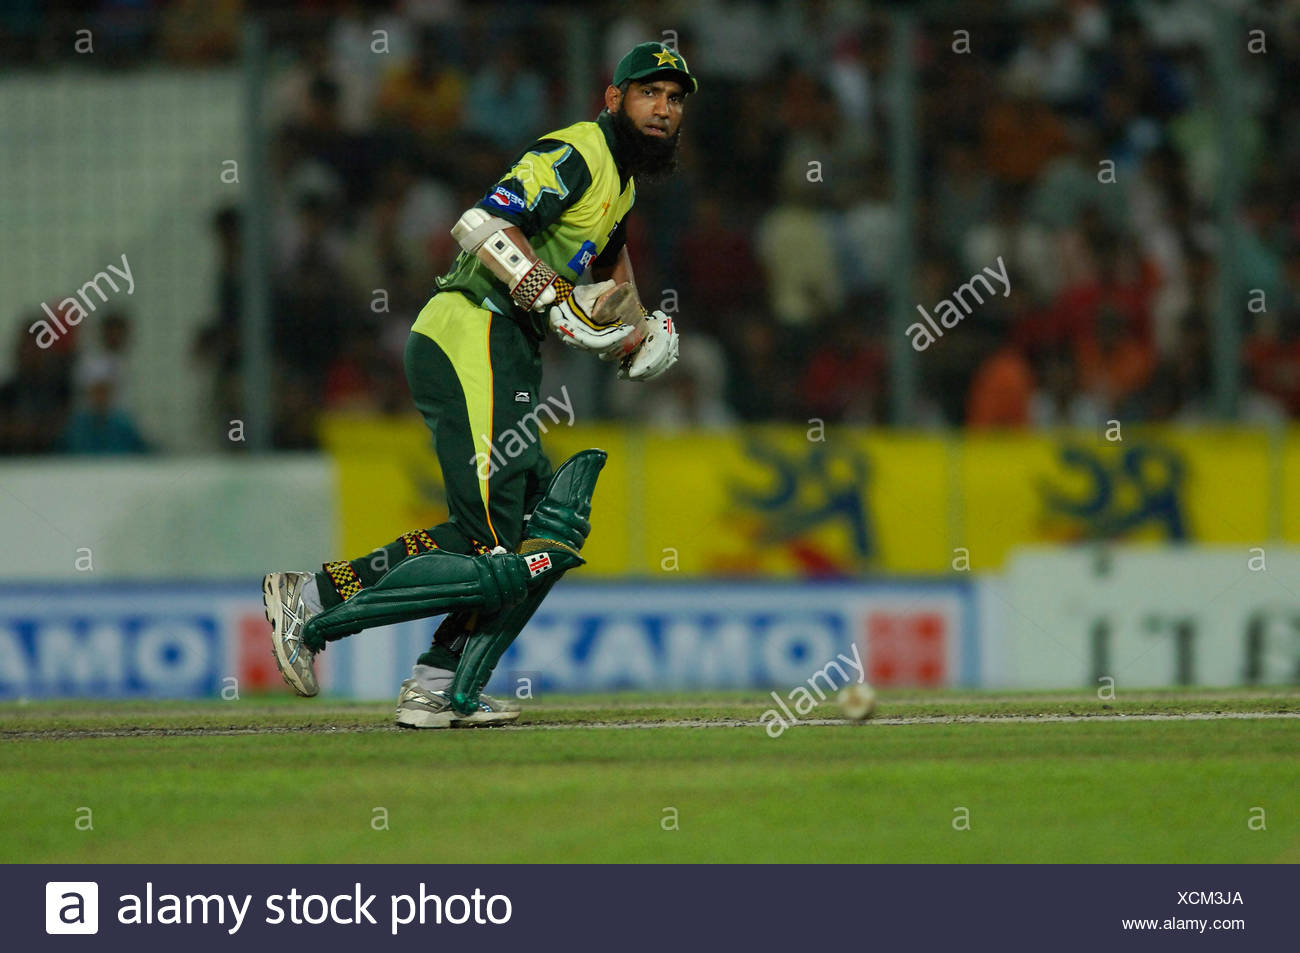 Mohammad Yousuf Stock Photo: 283183666 - Alamy